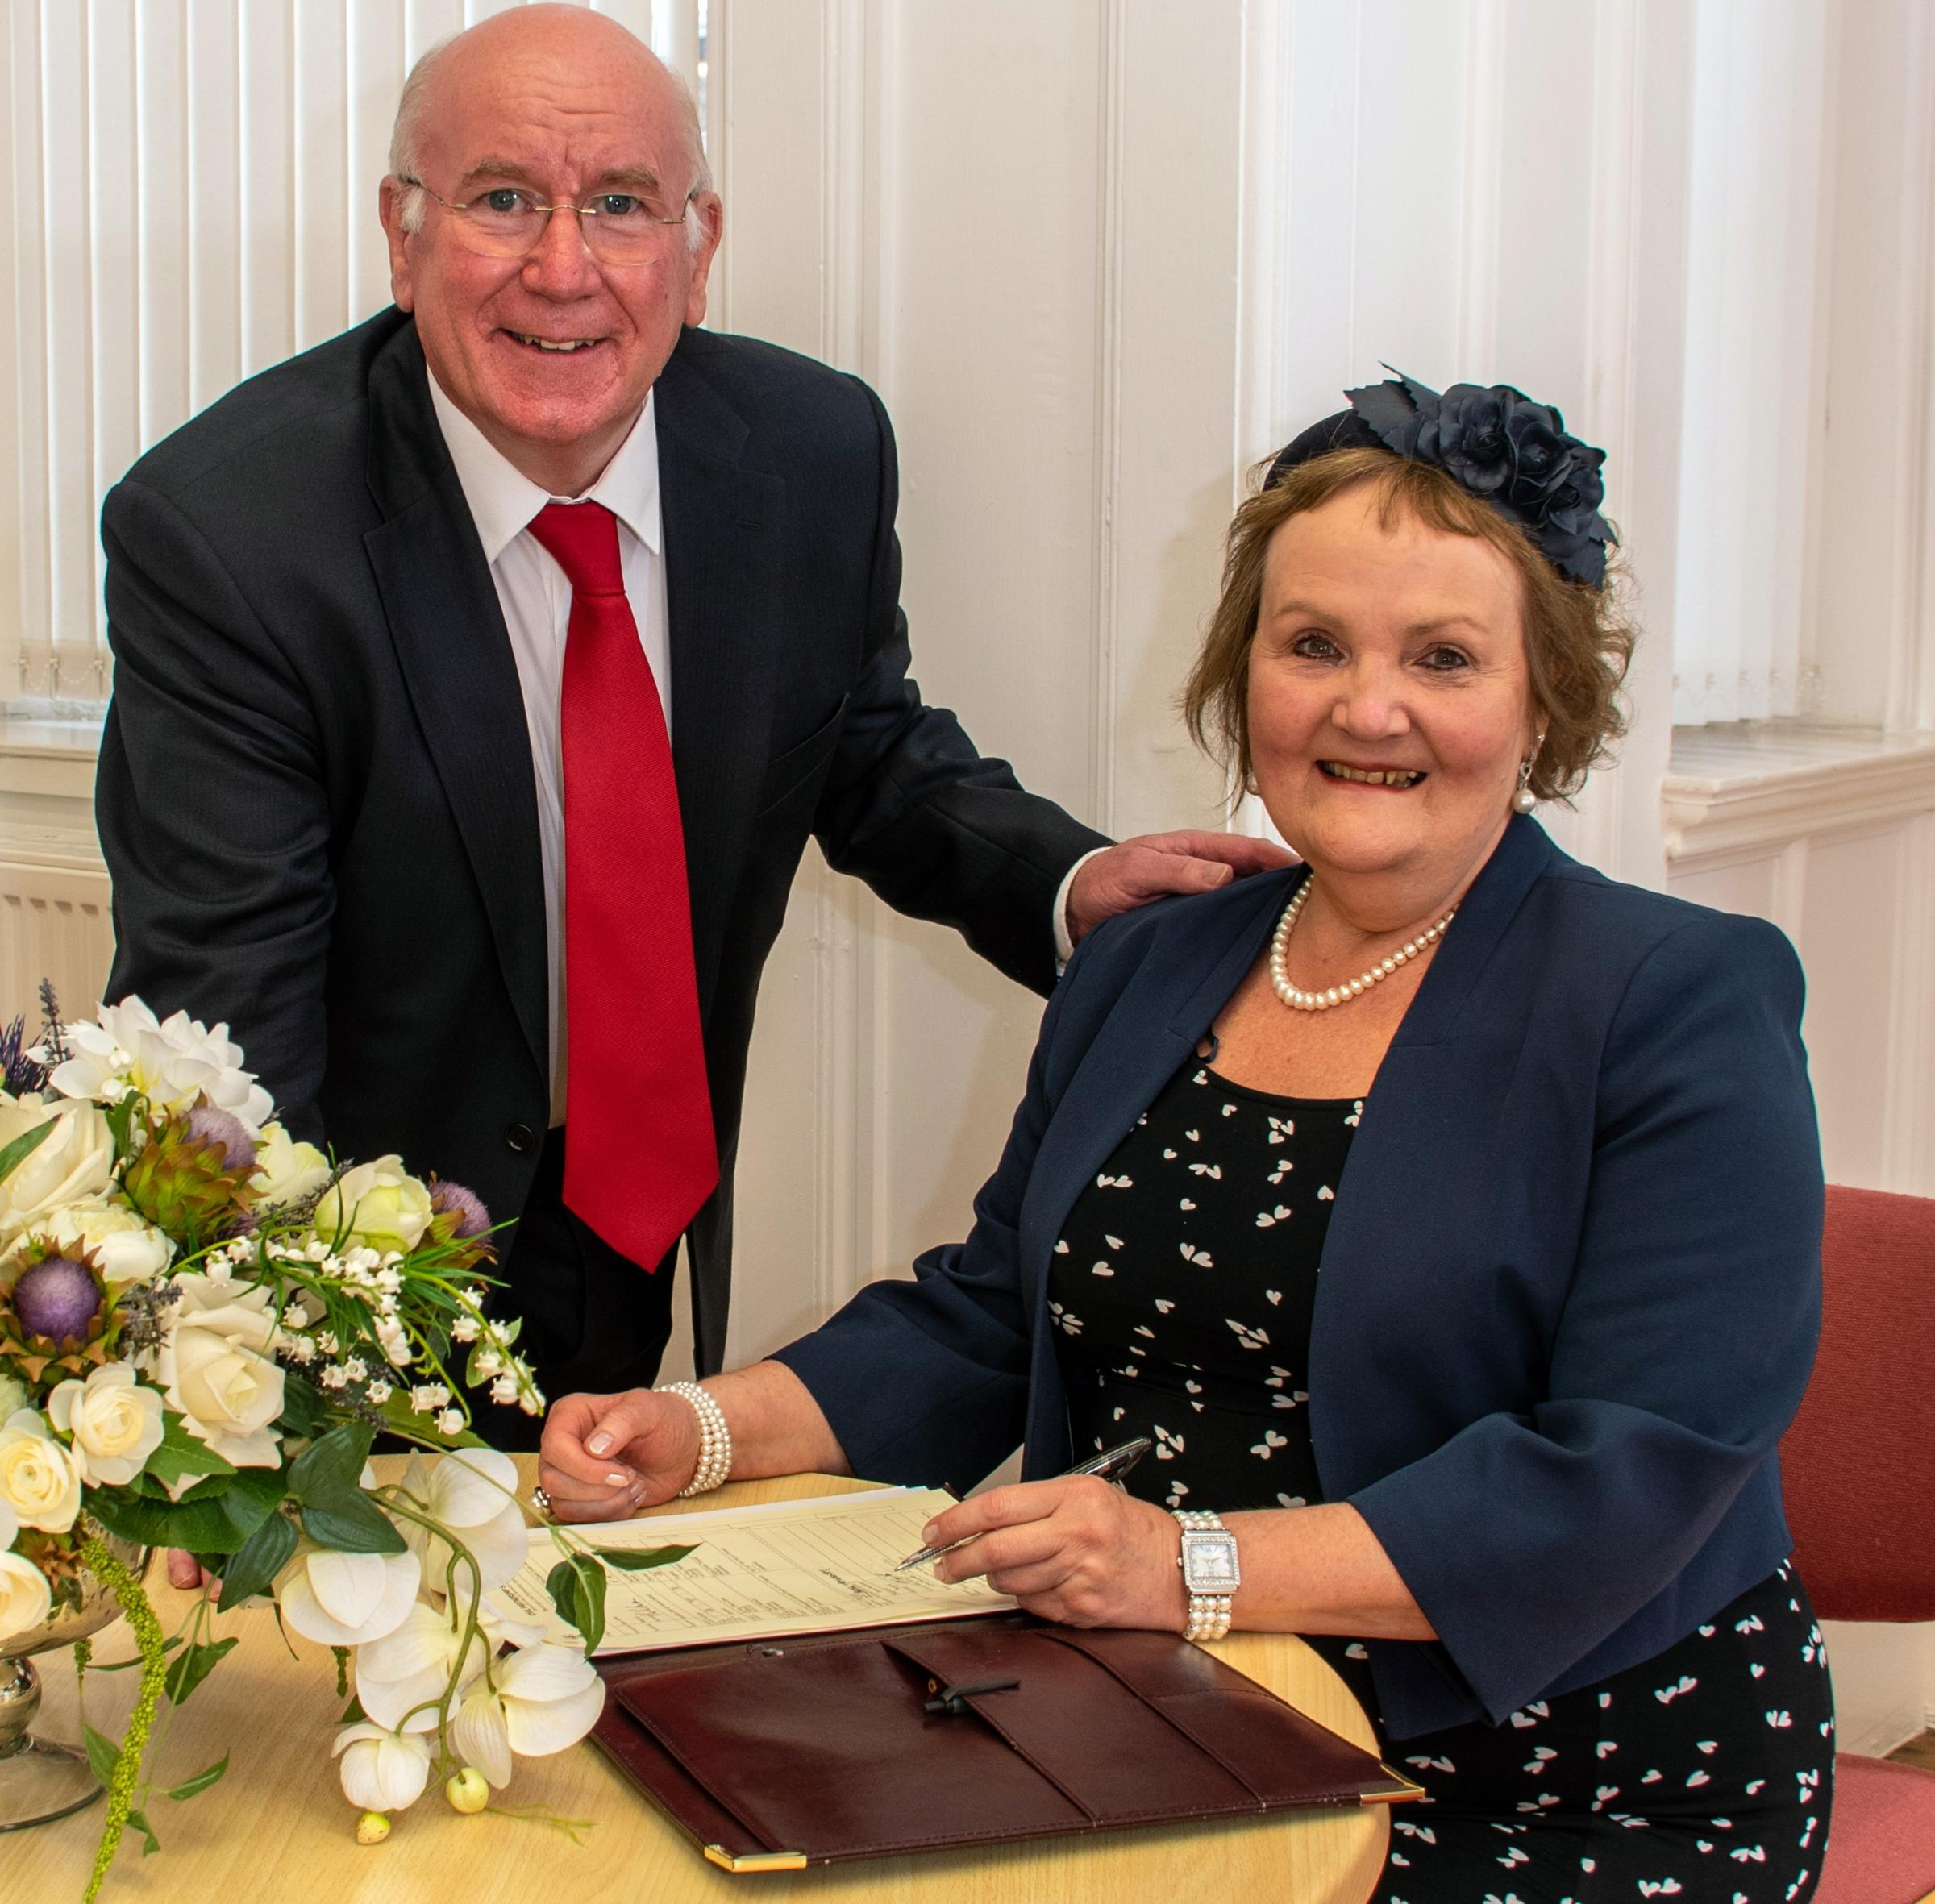 Viv and Alan become first couple to enter a mixed-sex civil partnership in Clacks